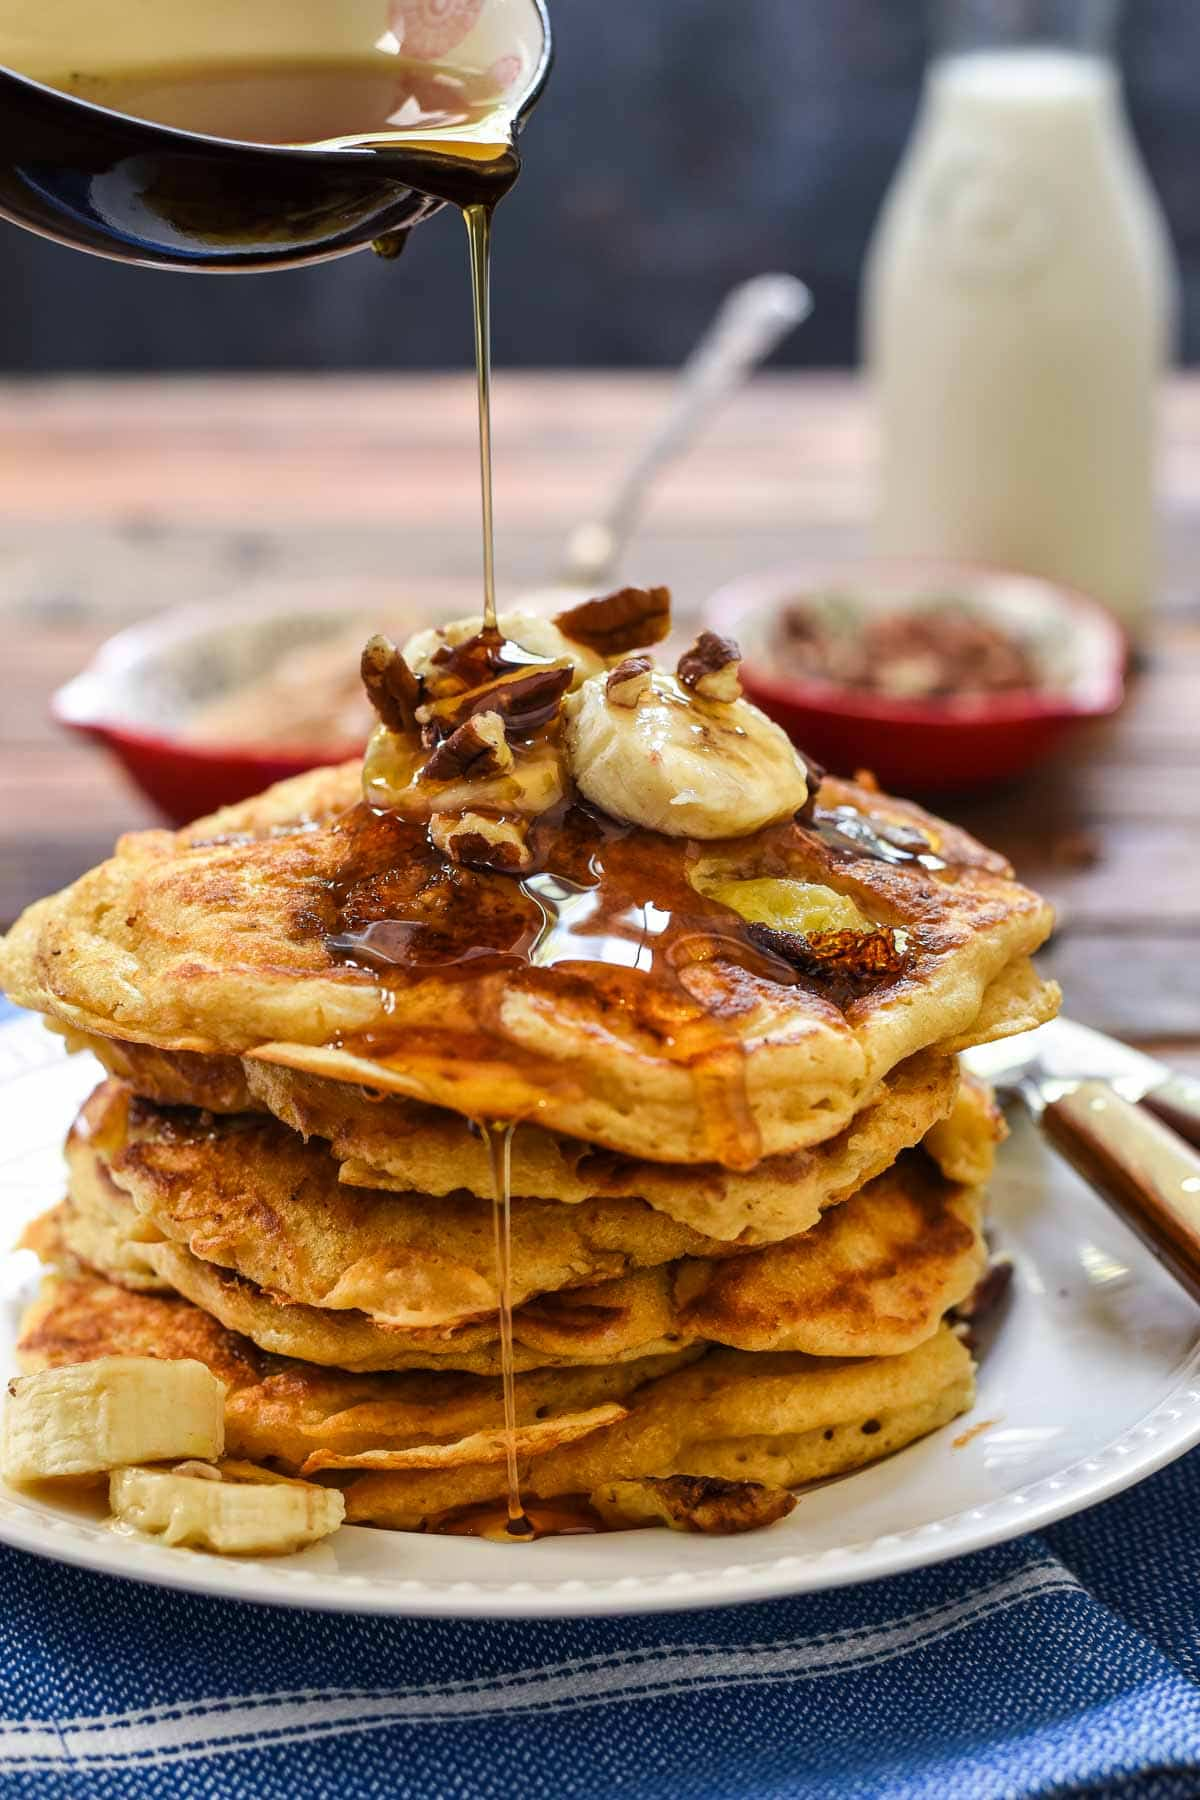 a stack of banana nut pancakes being drizzled with syrup